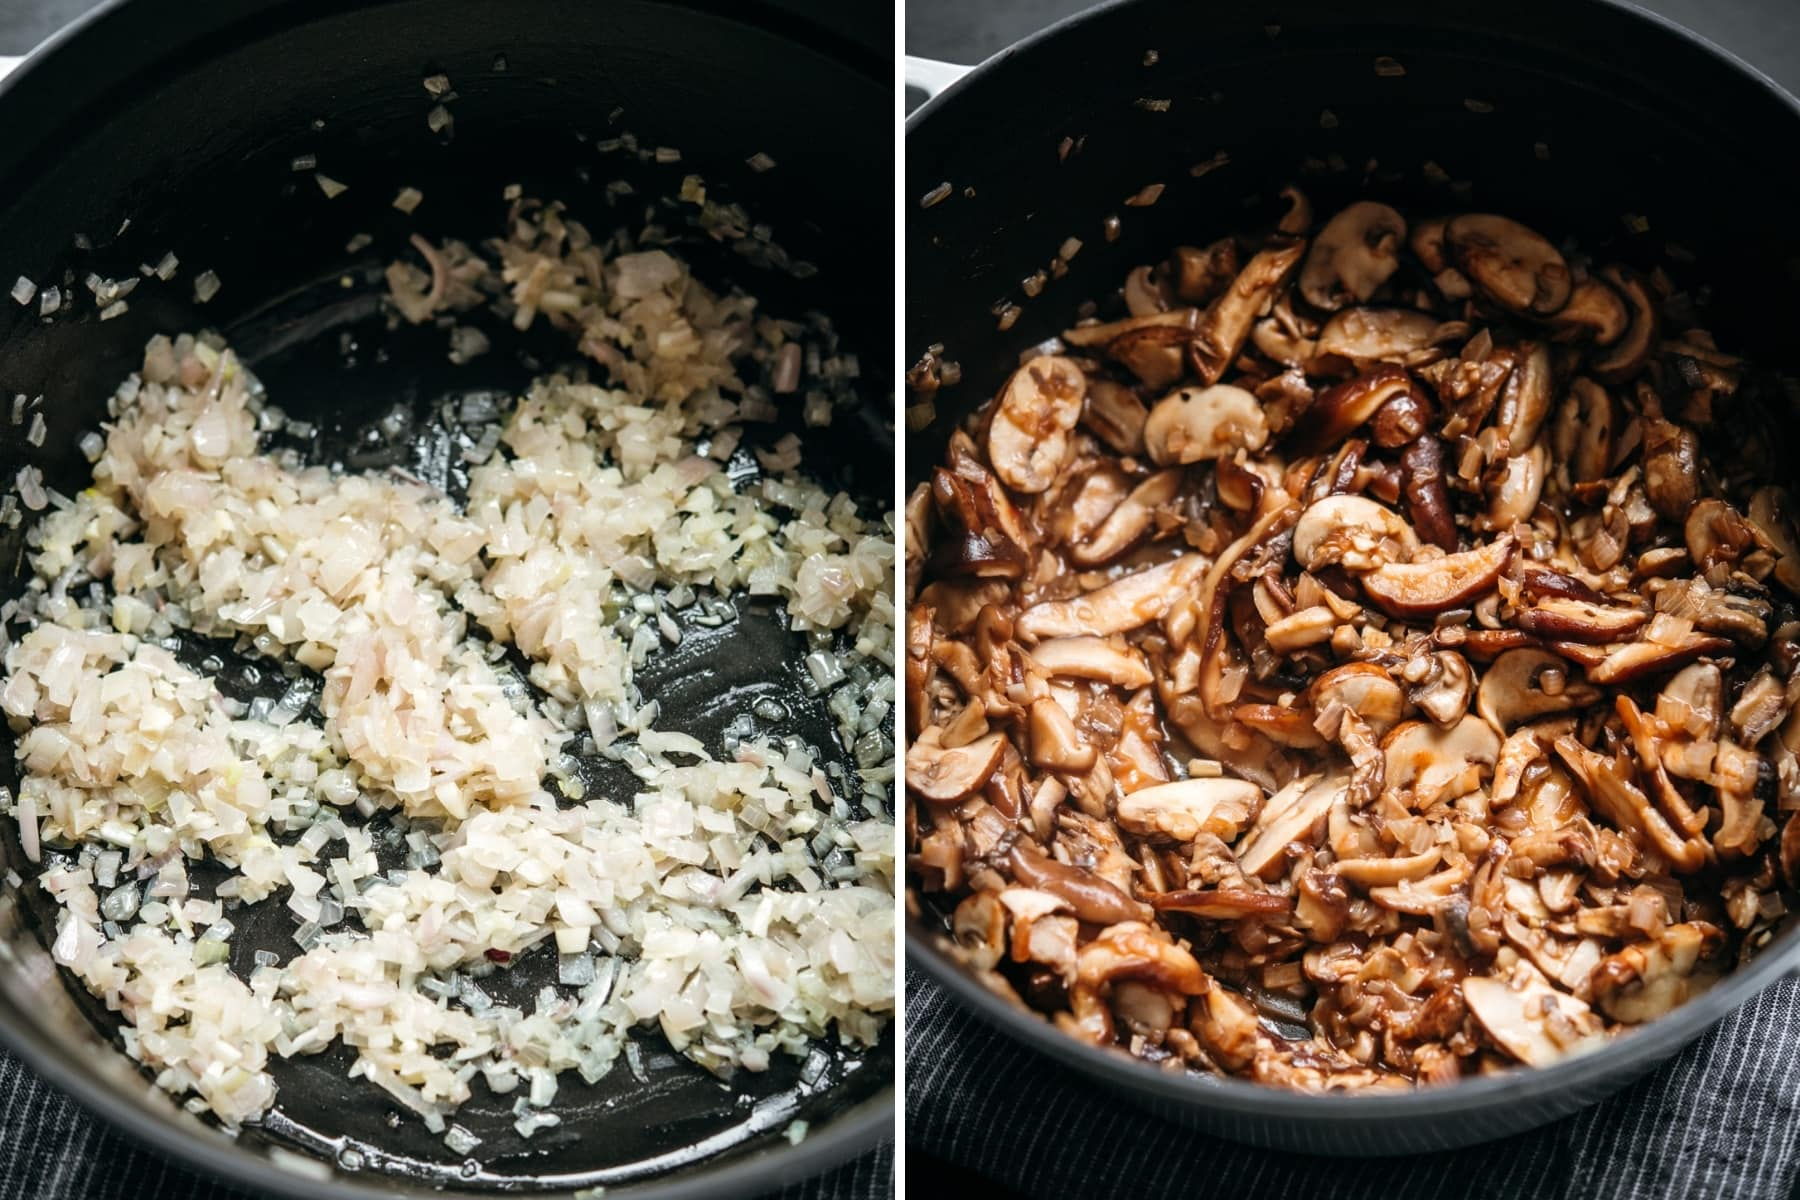 sautéed shallots, garlic and mushrooms in a dutch oven.